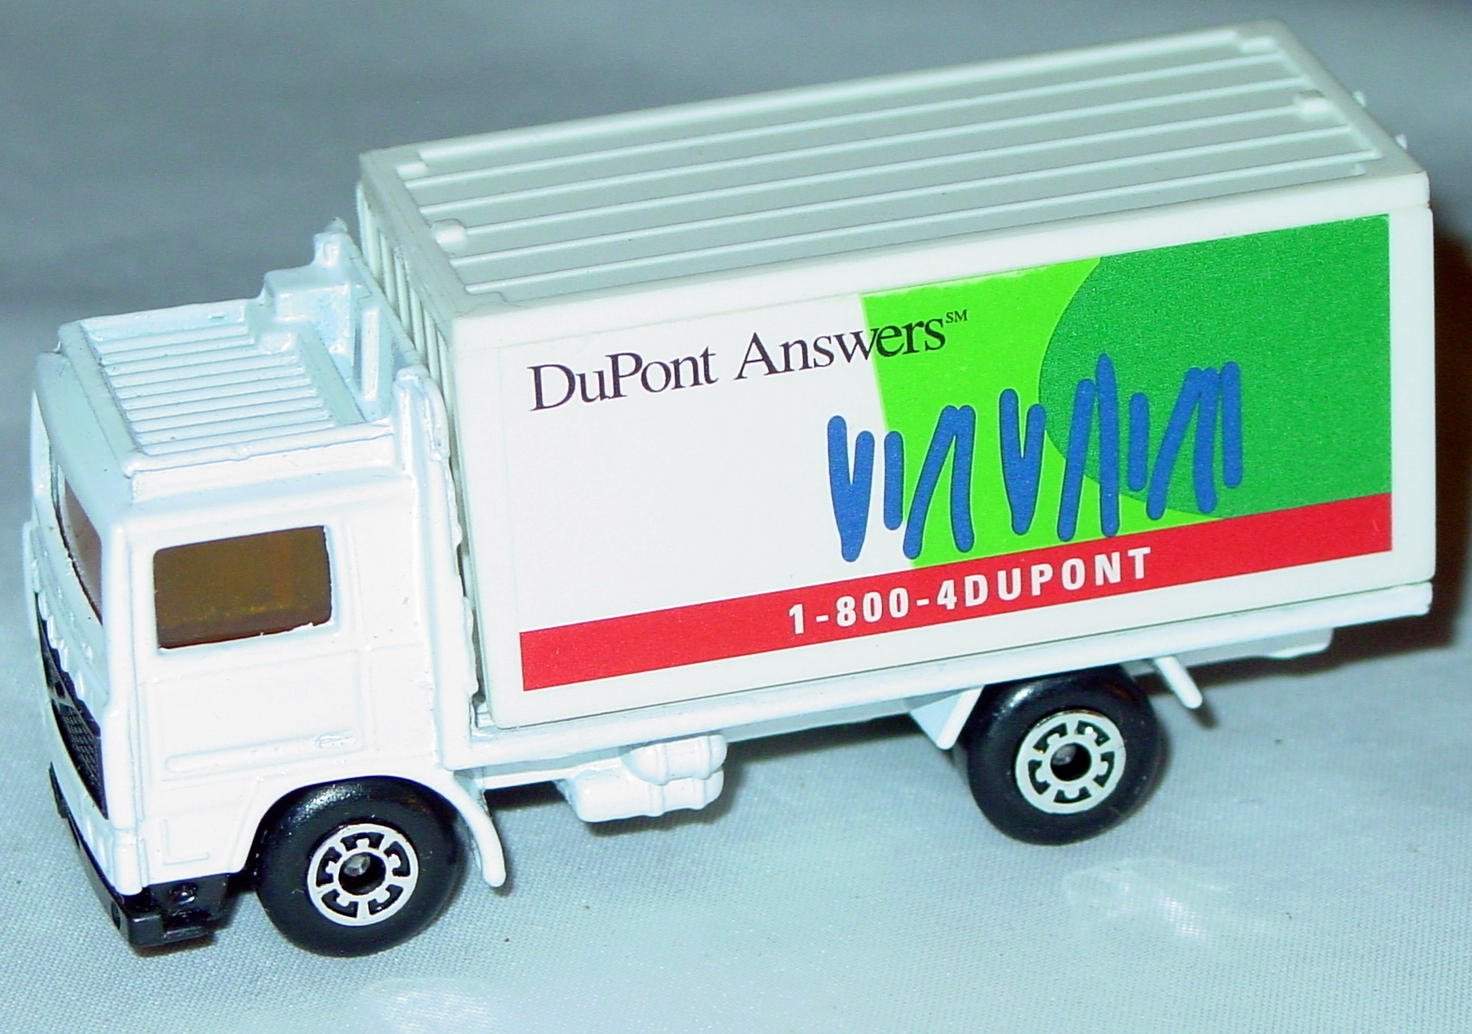 ASAP-CCI 20 D 43 - Volvo Cont Truck White and White Dupont answers made in China ASAP